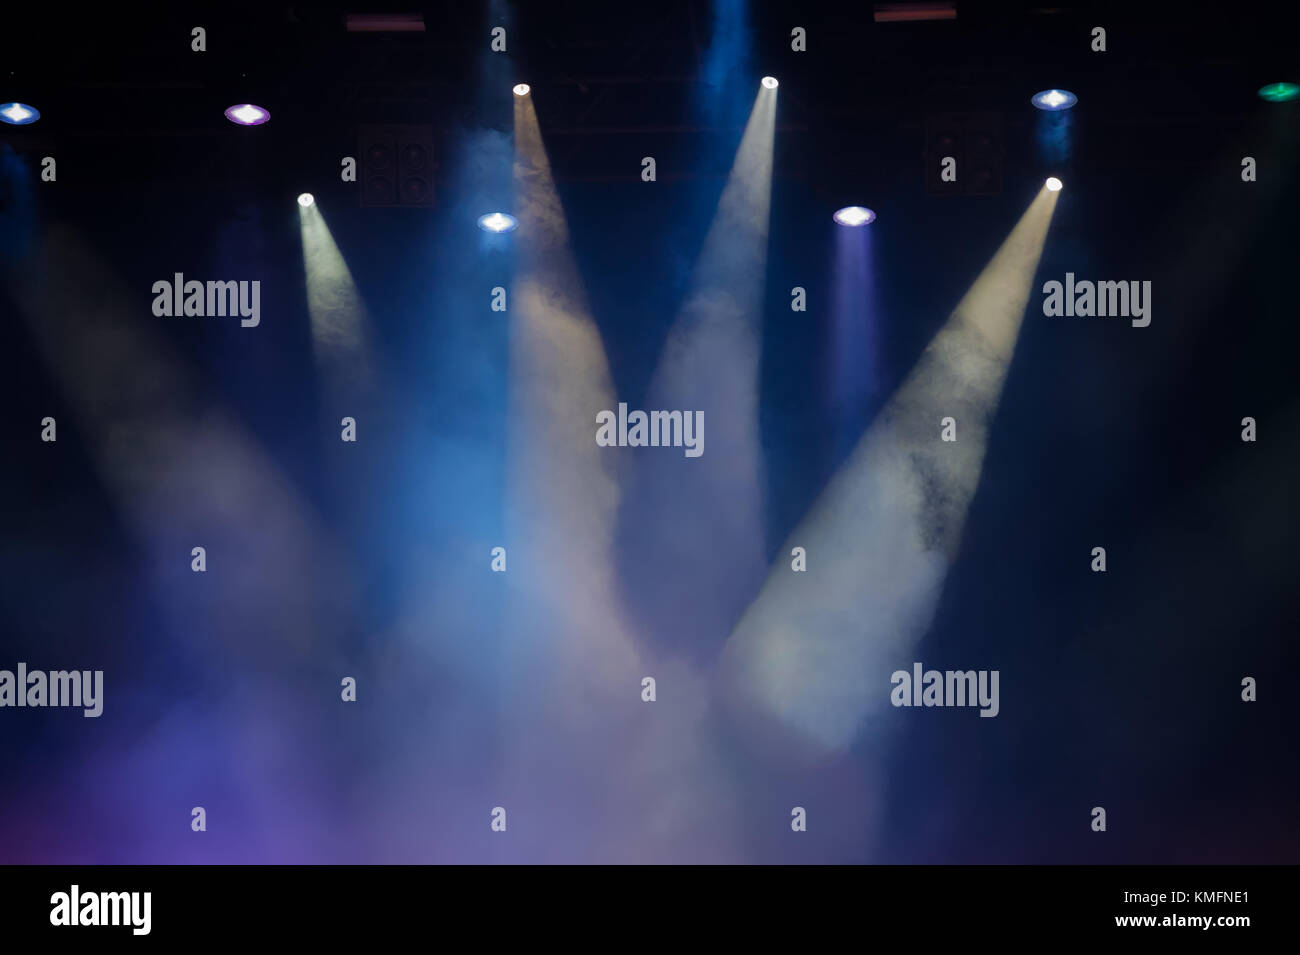 Concert stage. Beautiful Colourful disco lighting in the stage. Performance moving lighting. Concert Light Show. - Stock Image